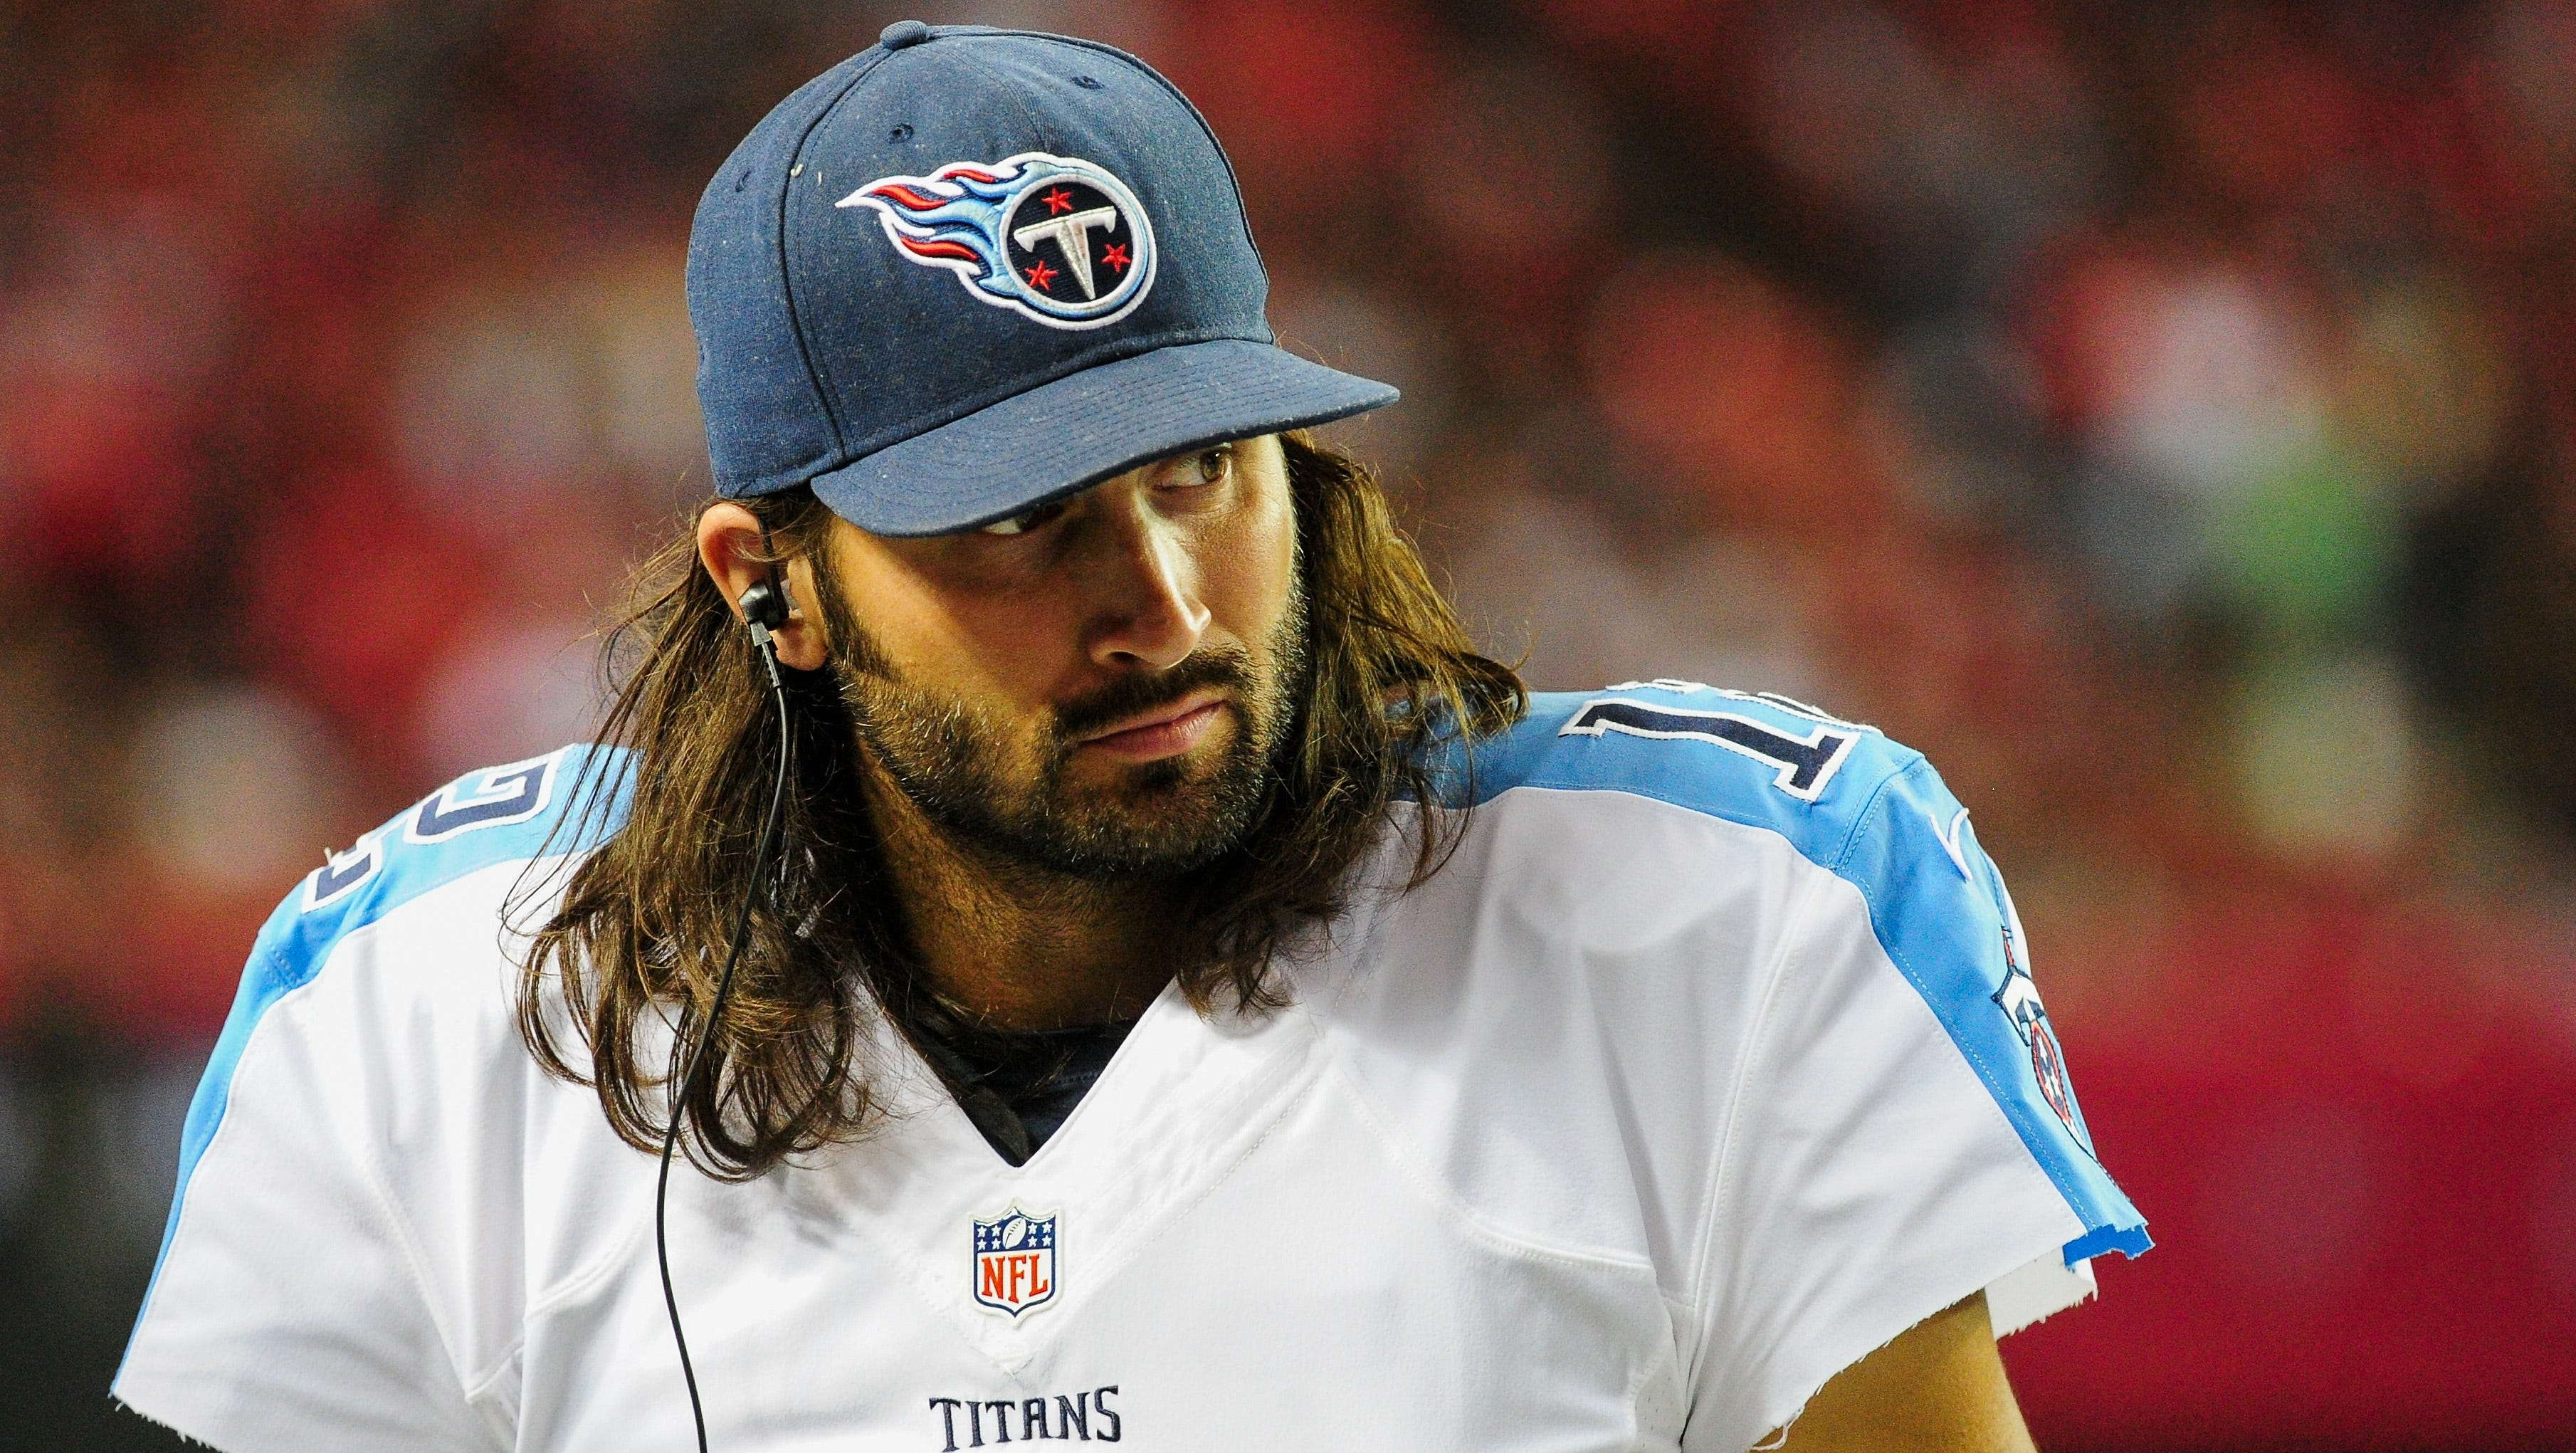 Charlie Whitehurst one of '25 Most Beautiful People'